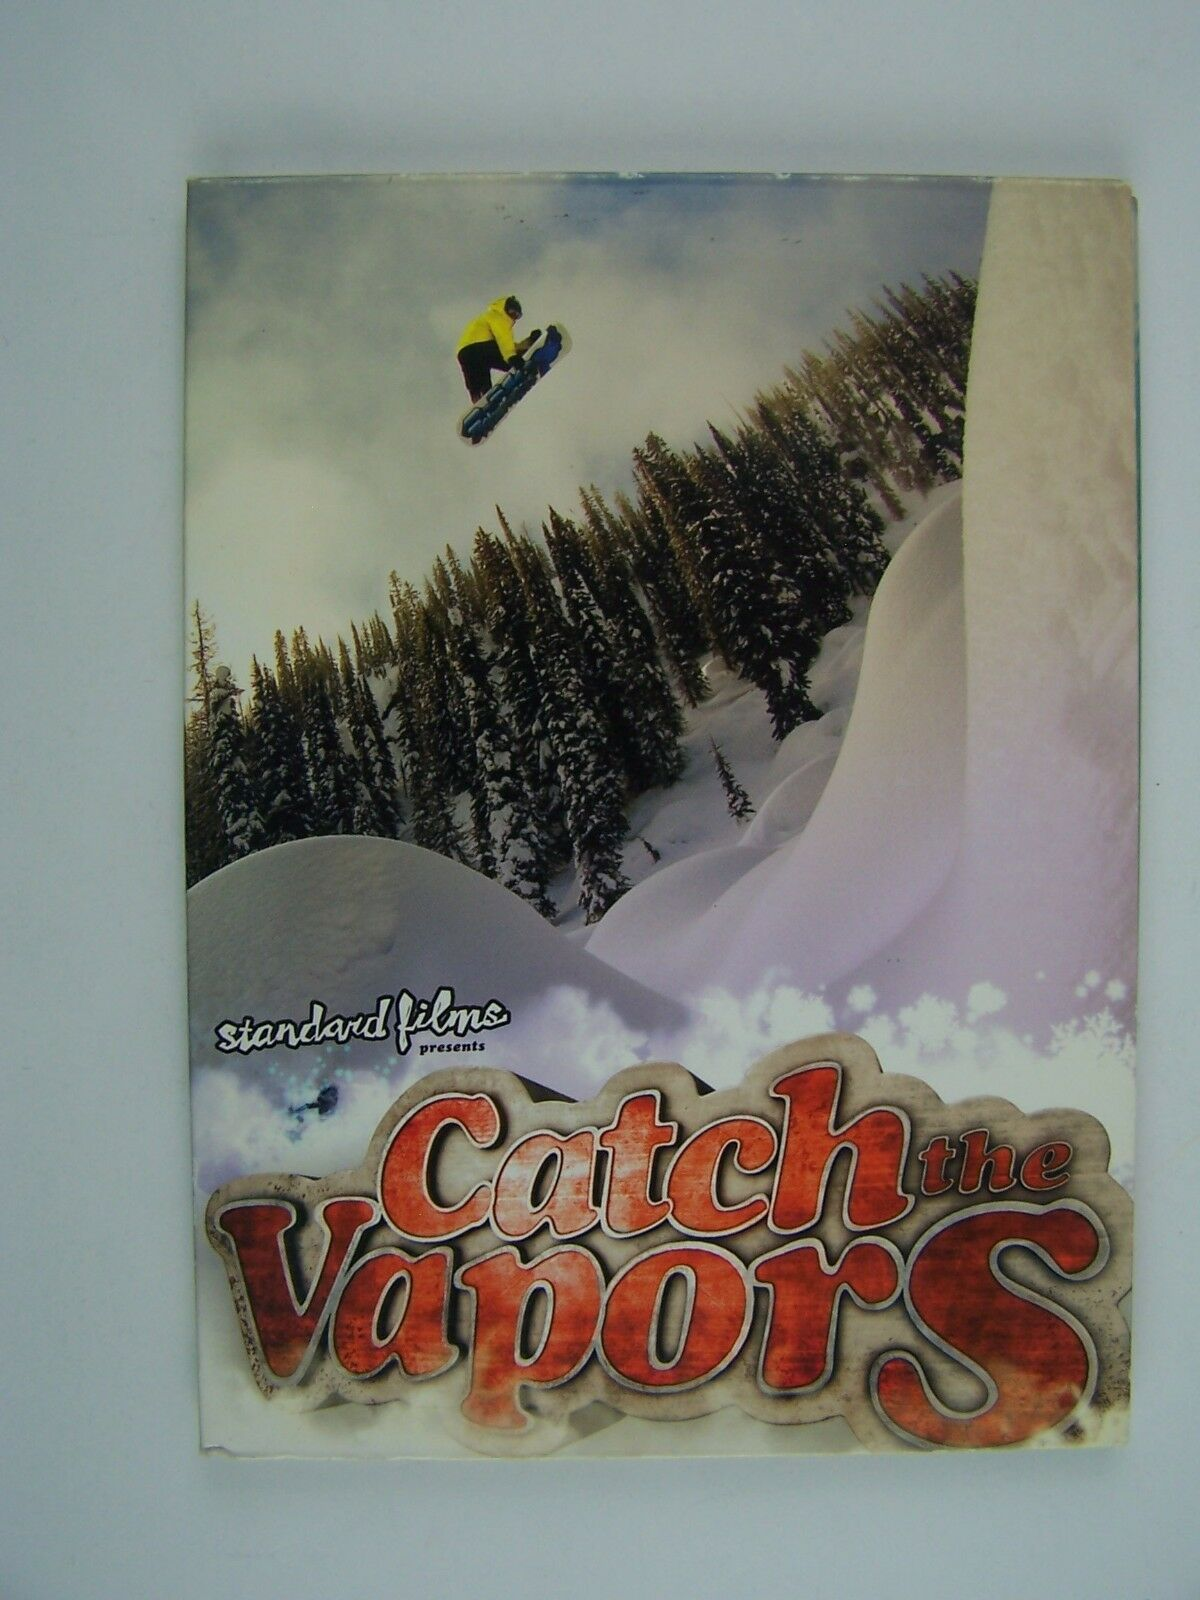 Snowboarding - Catch the Vapors DVD 730475846604